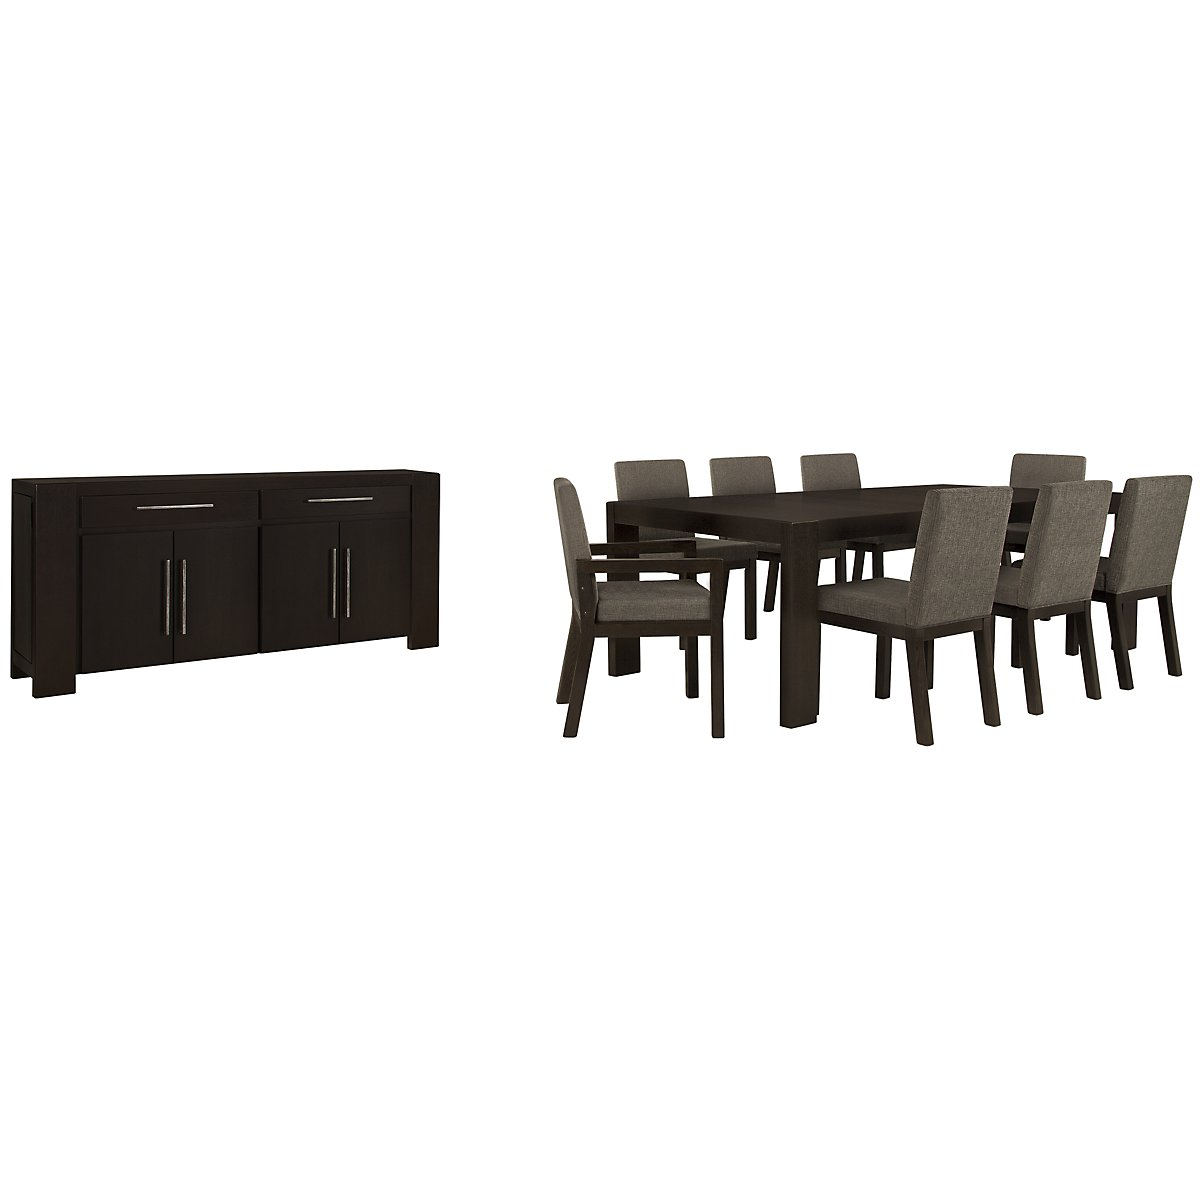 Tocara Dark Tone Rect Dining Room